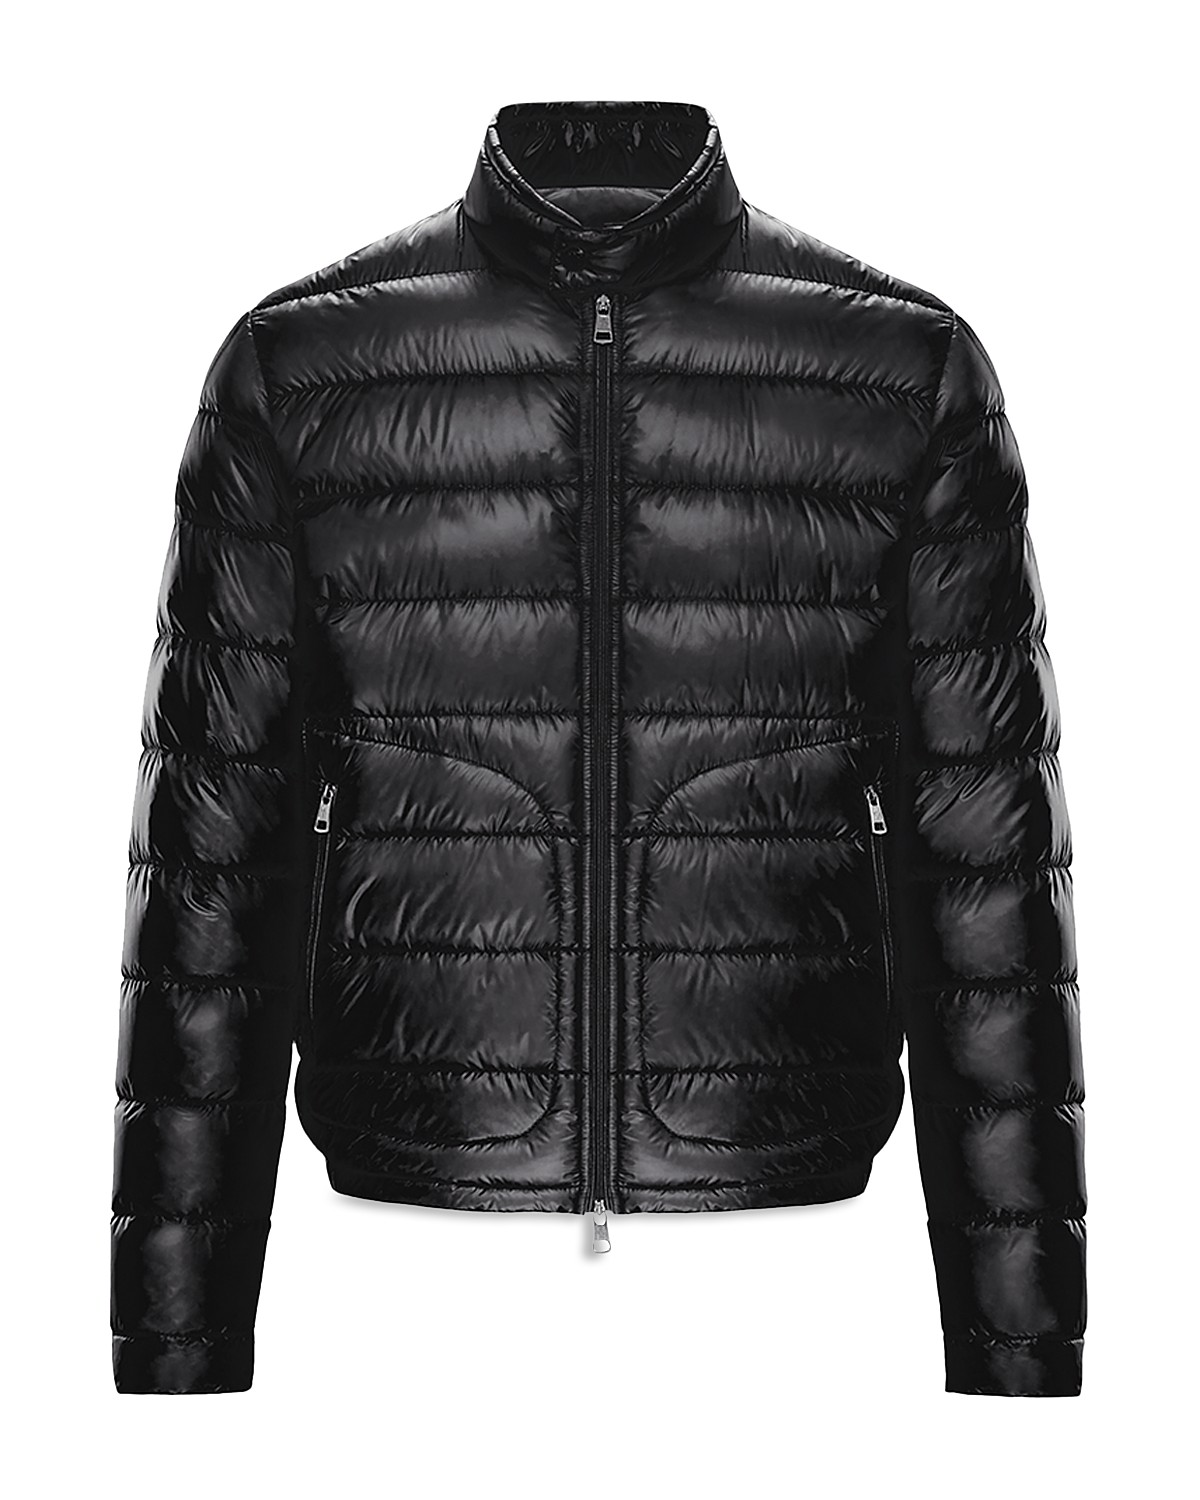 new product 56522 61998 Black moncler outlet in usa Acorus Puffer Jacket